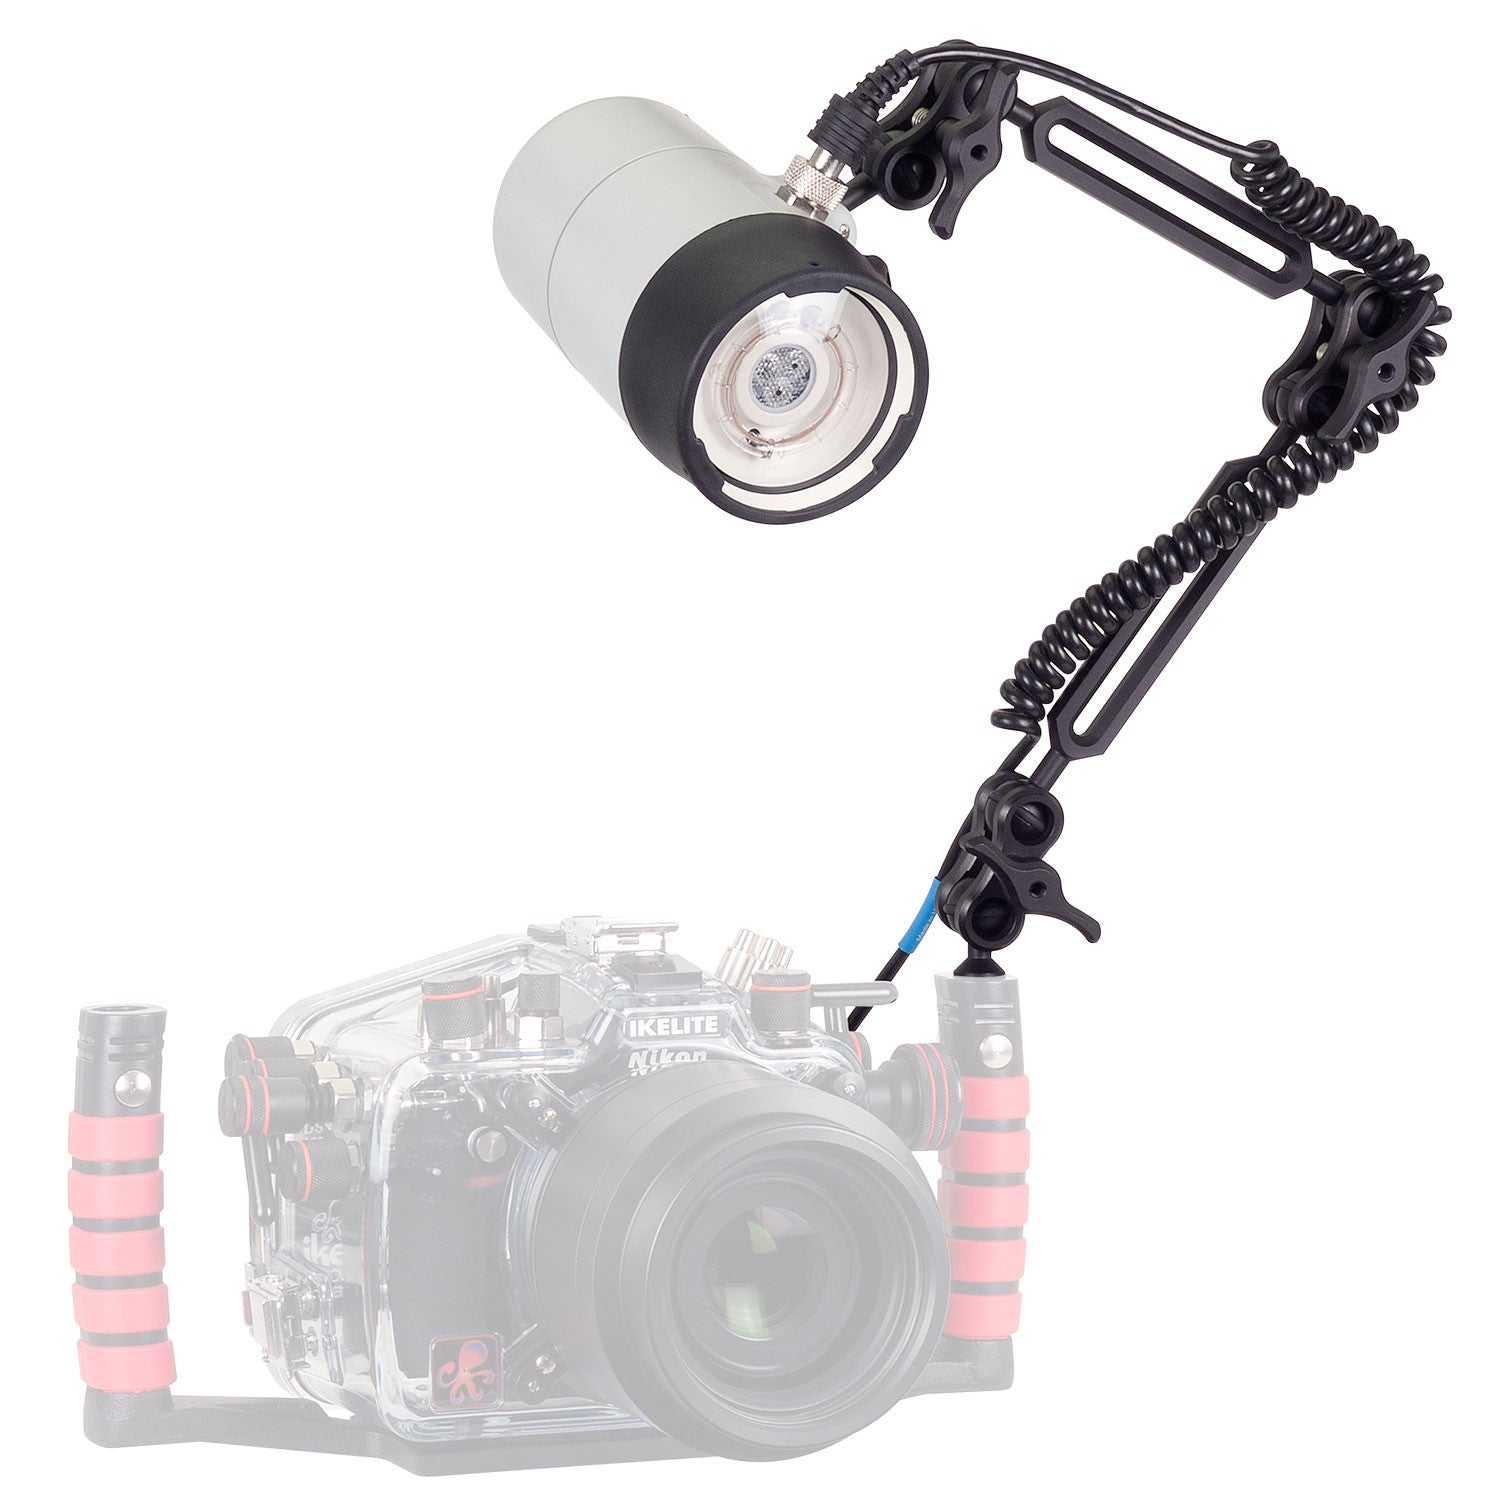 Ikelite DS161 Strobe Kit with Sync Cord + Arm / NiMH 4061.35